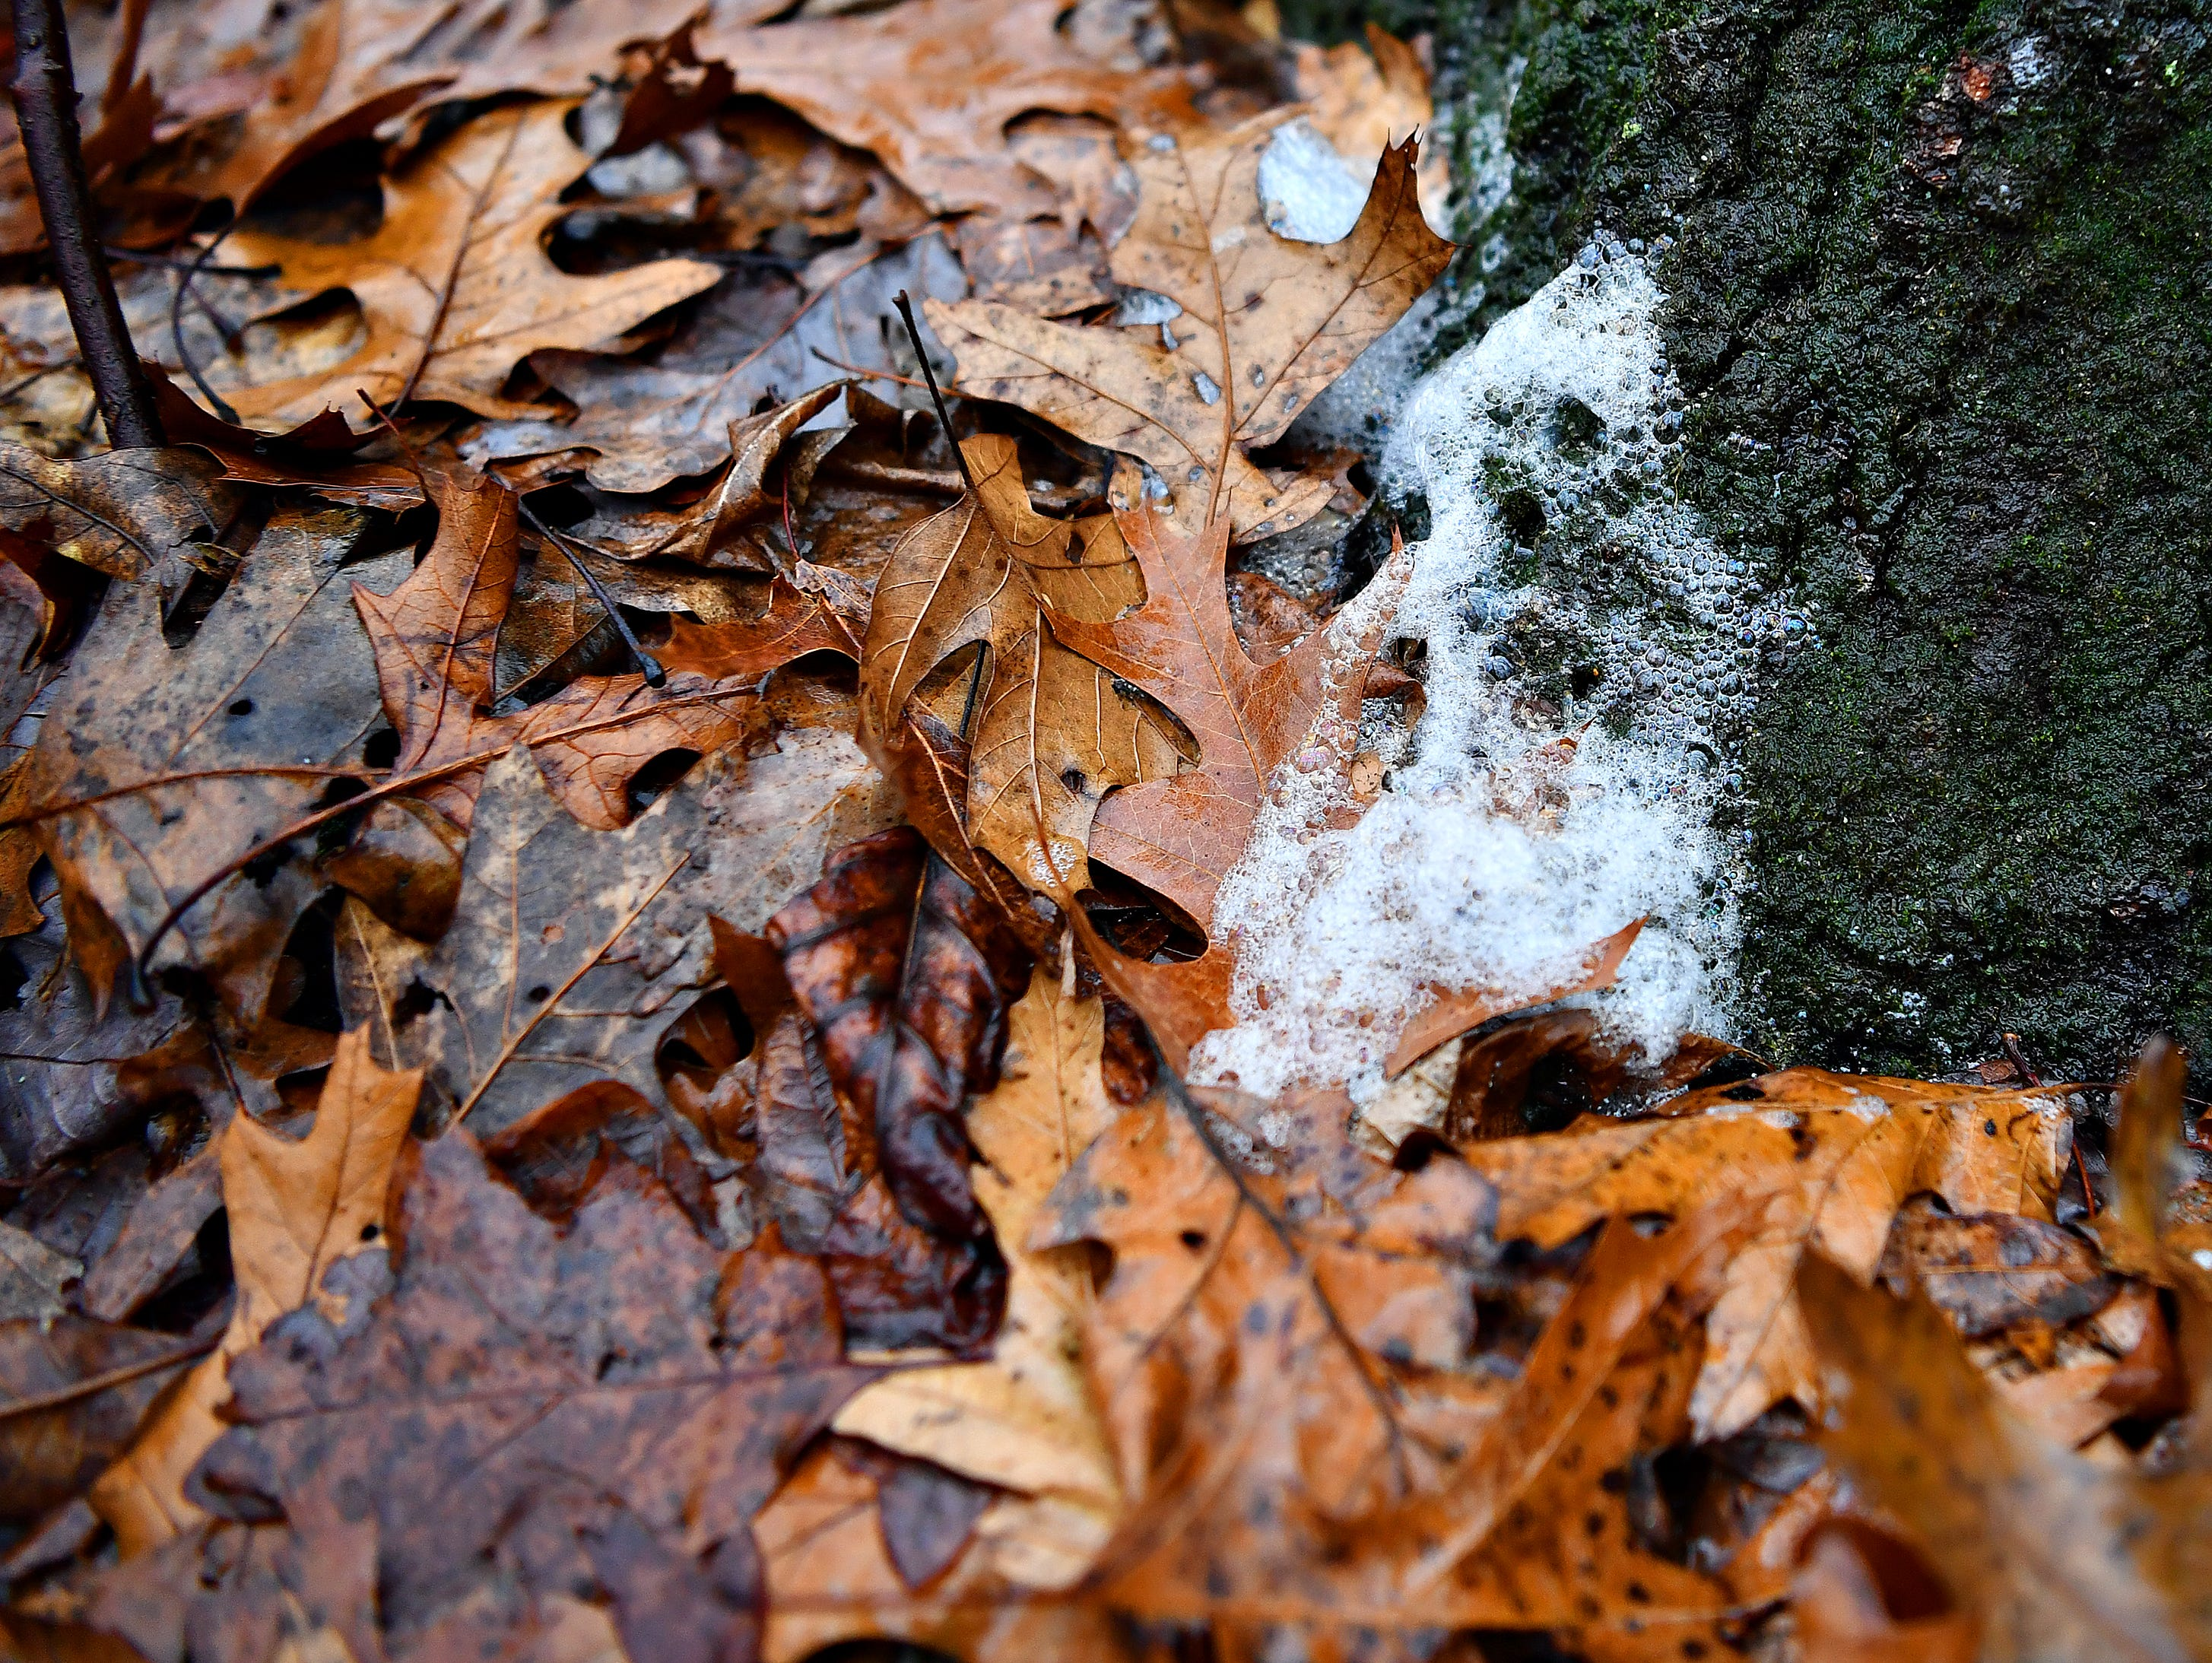 A foamy substance is seen at the base of a tree as York County Parks Naturalist Kelsey Frey leads a Marshmallow Hike at Rocky Ridge Park in Springettsbury Township, Friday, Dec. 28, 2018. Dawn J. Sagert photo